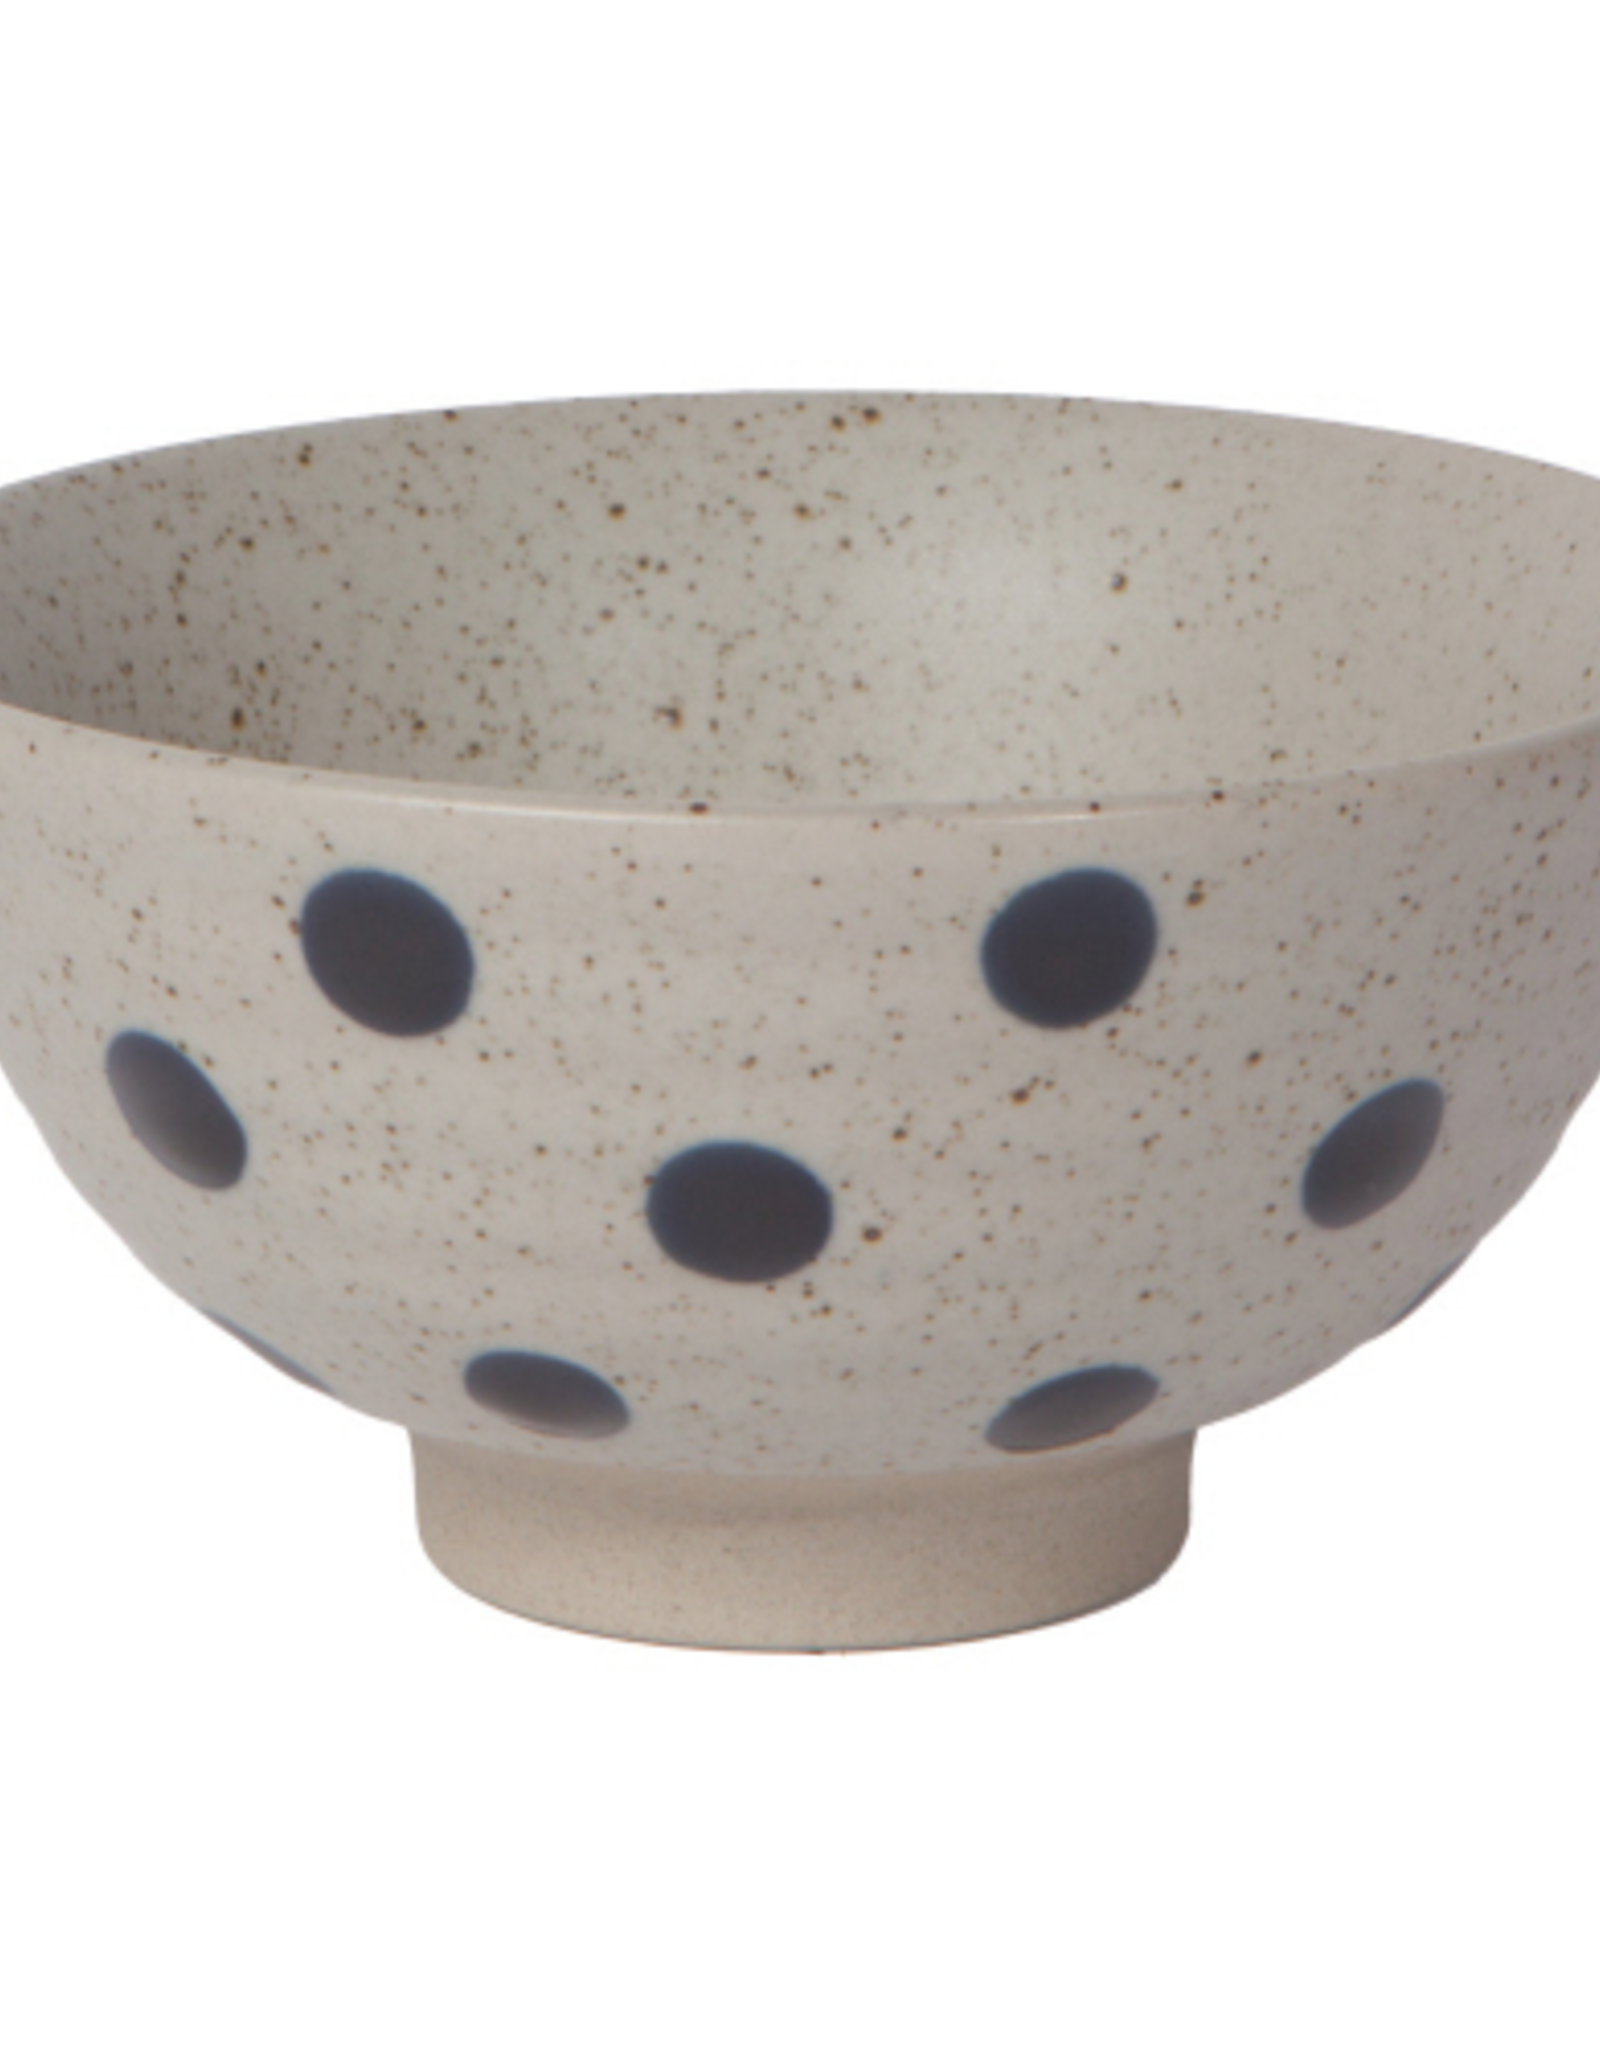 Element Bowl Large - Audrey